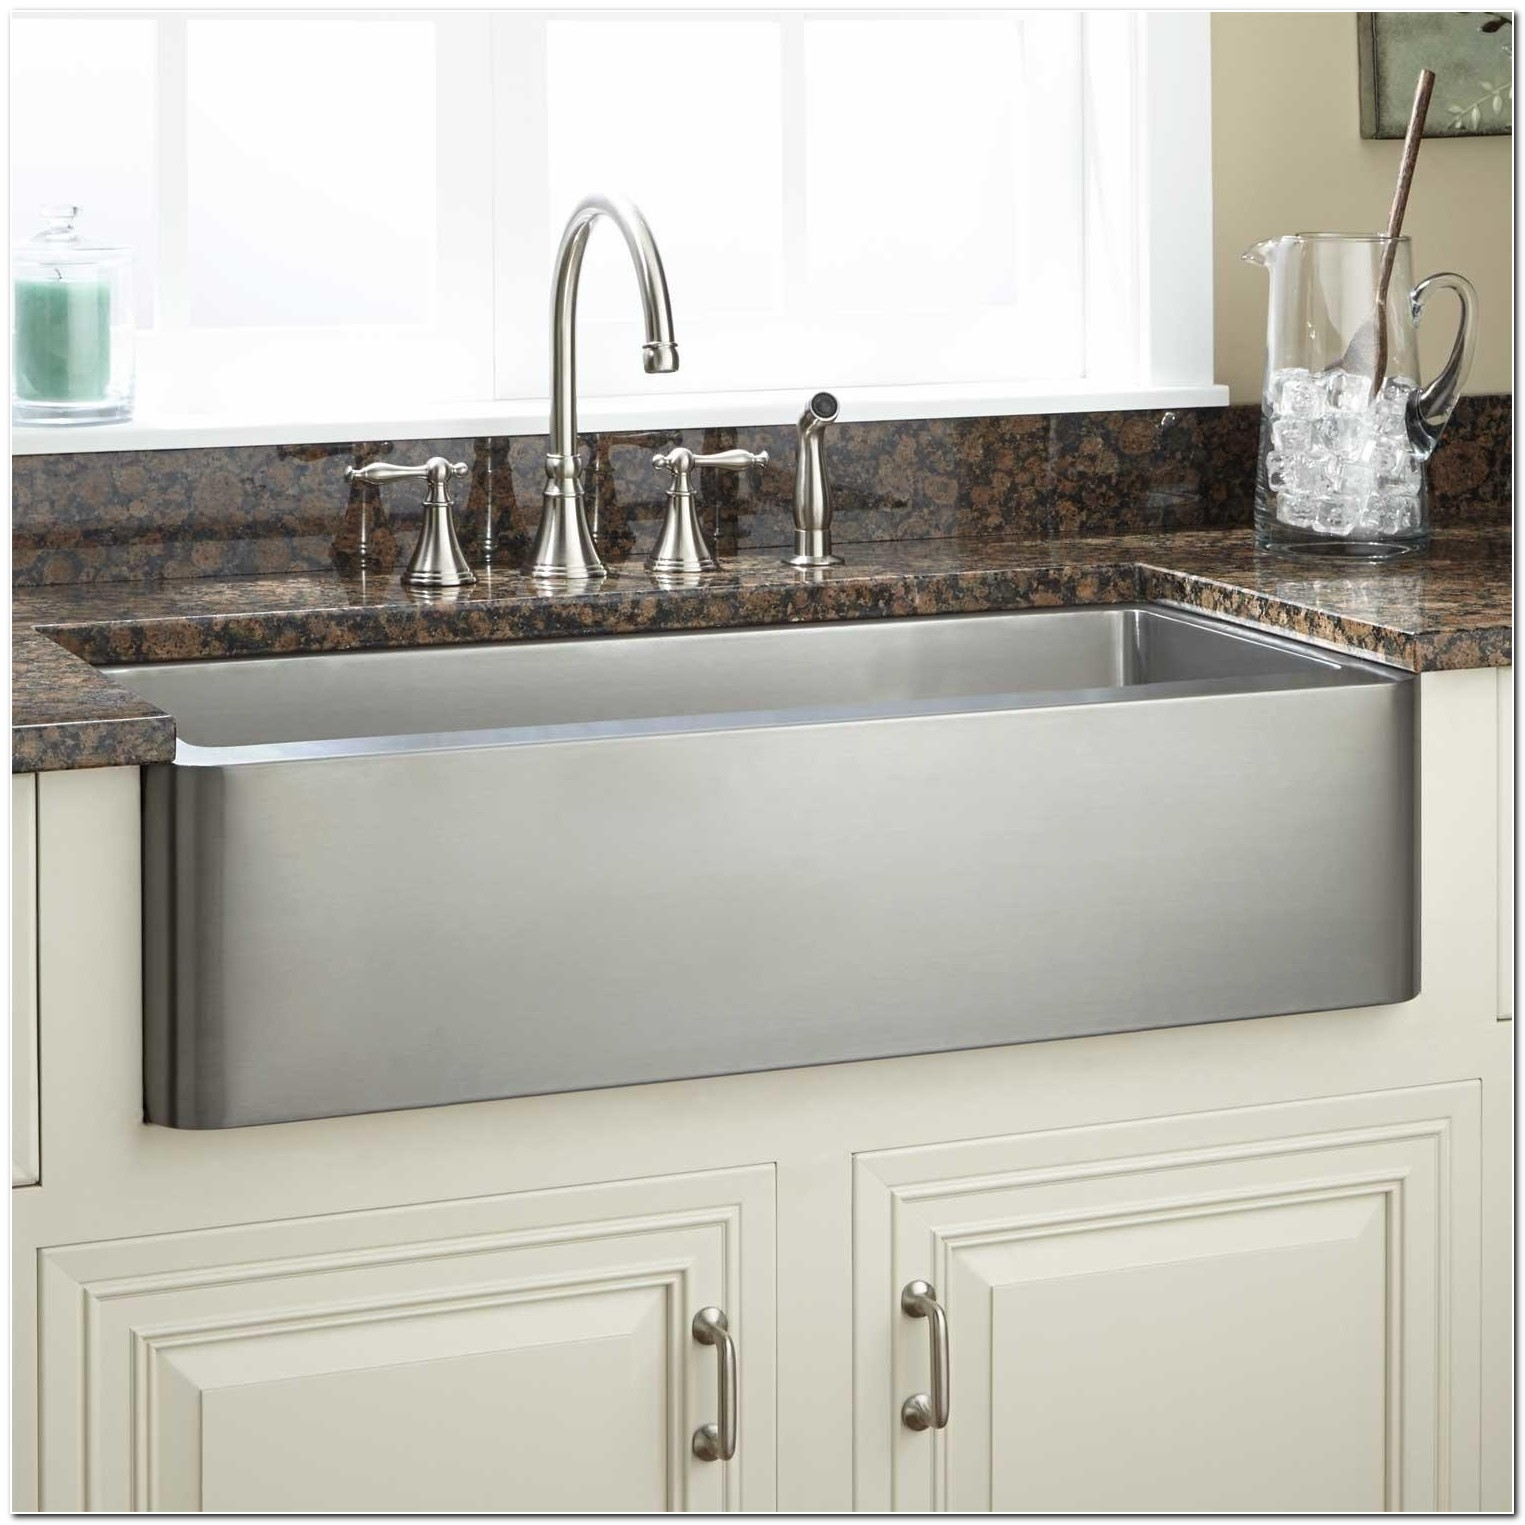 36 Farmhouse Stainless Steel Sink